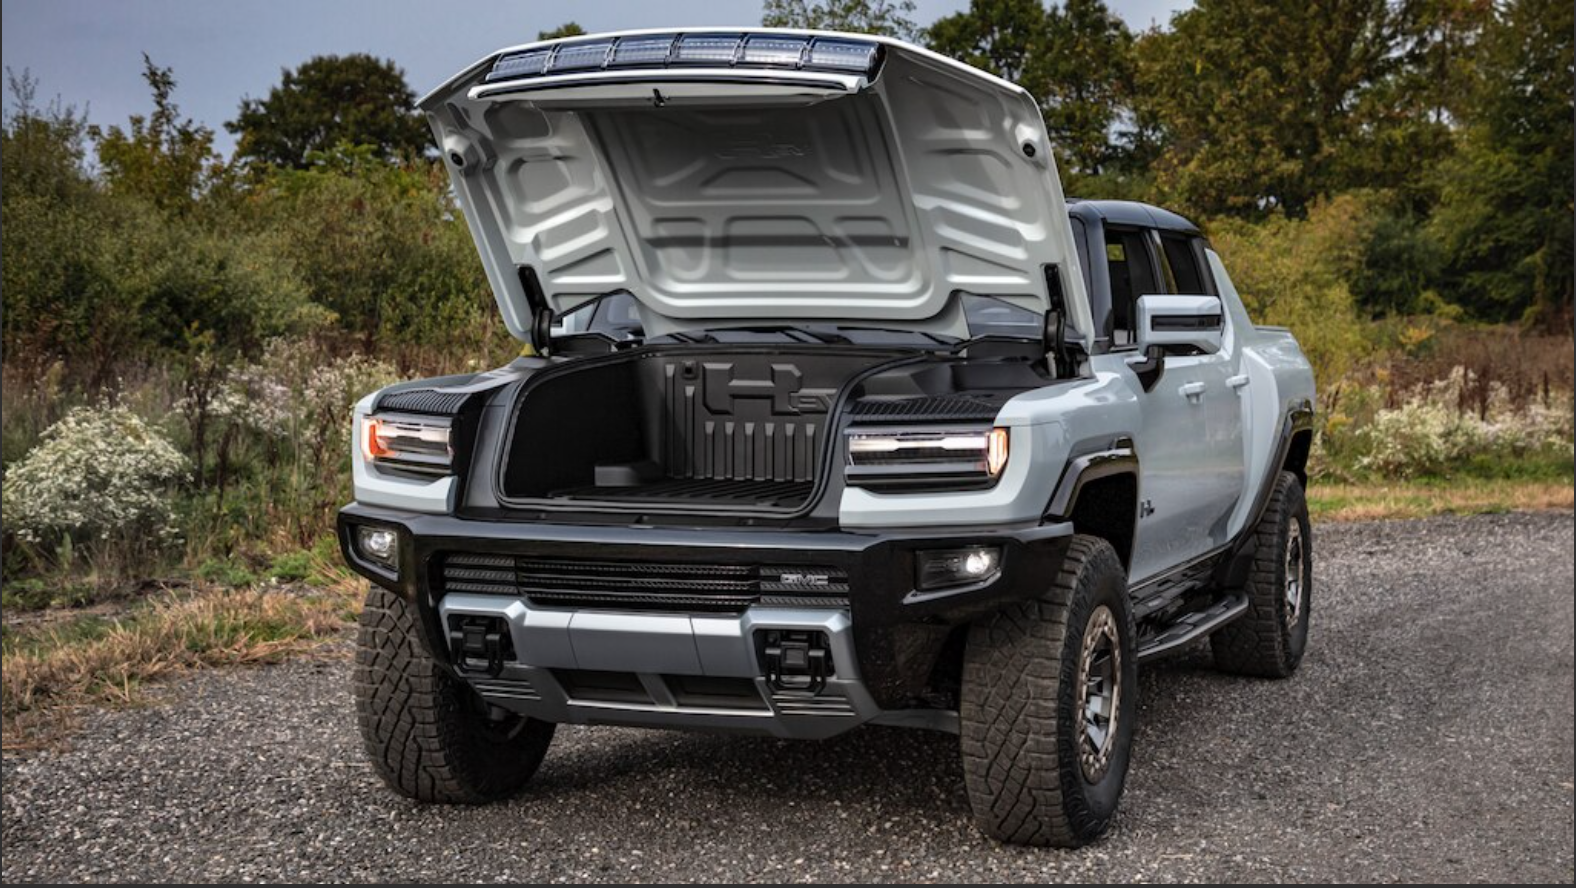 Get a look under the hood of the New GMC Hummer